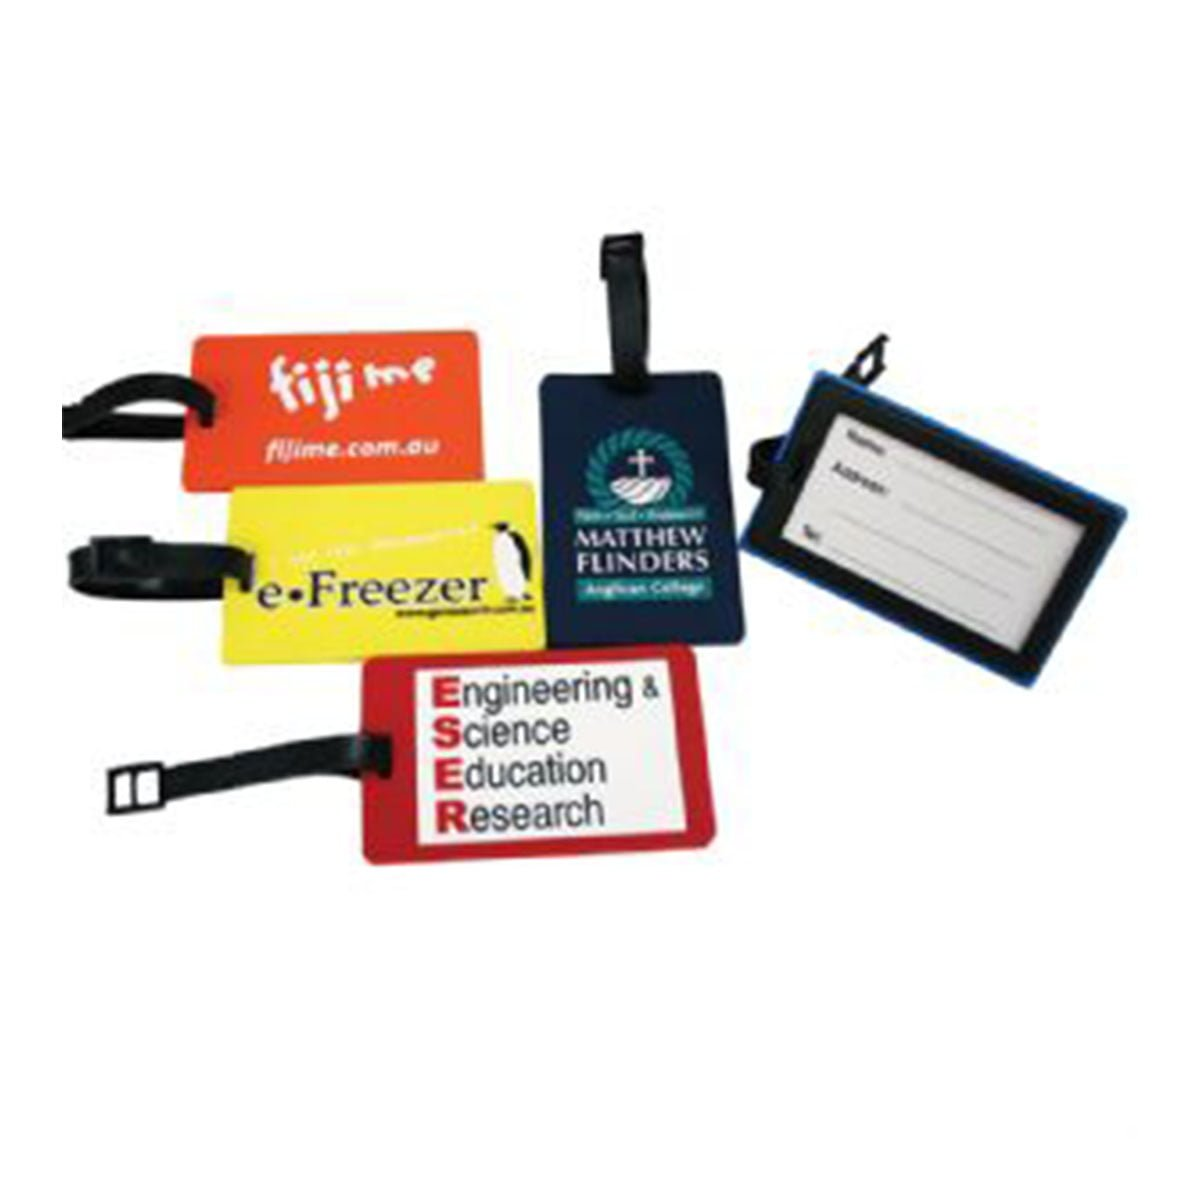 Custom PVC Luggage Tag – Original Rectangle Design-Available in any PMS colour.